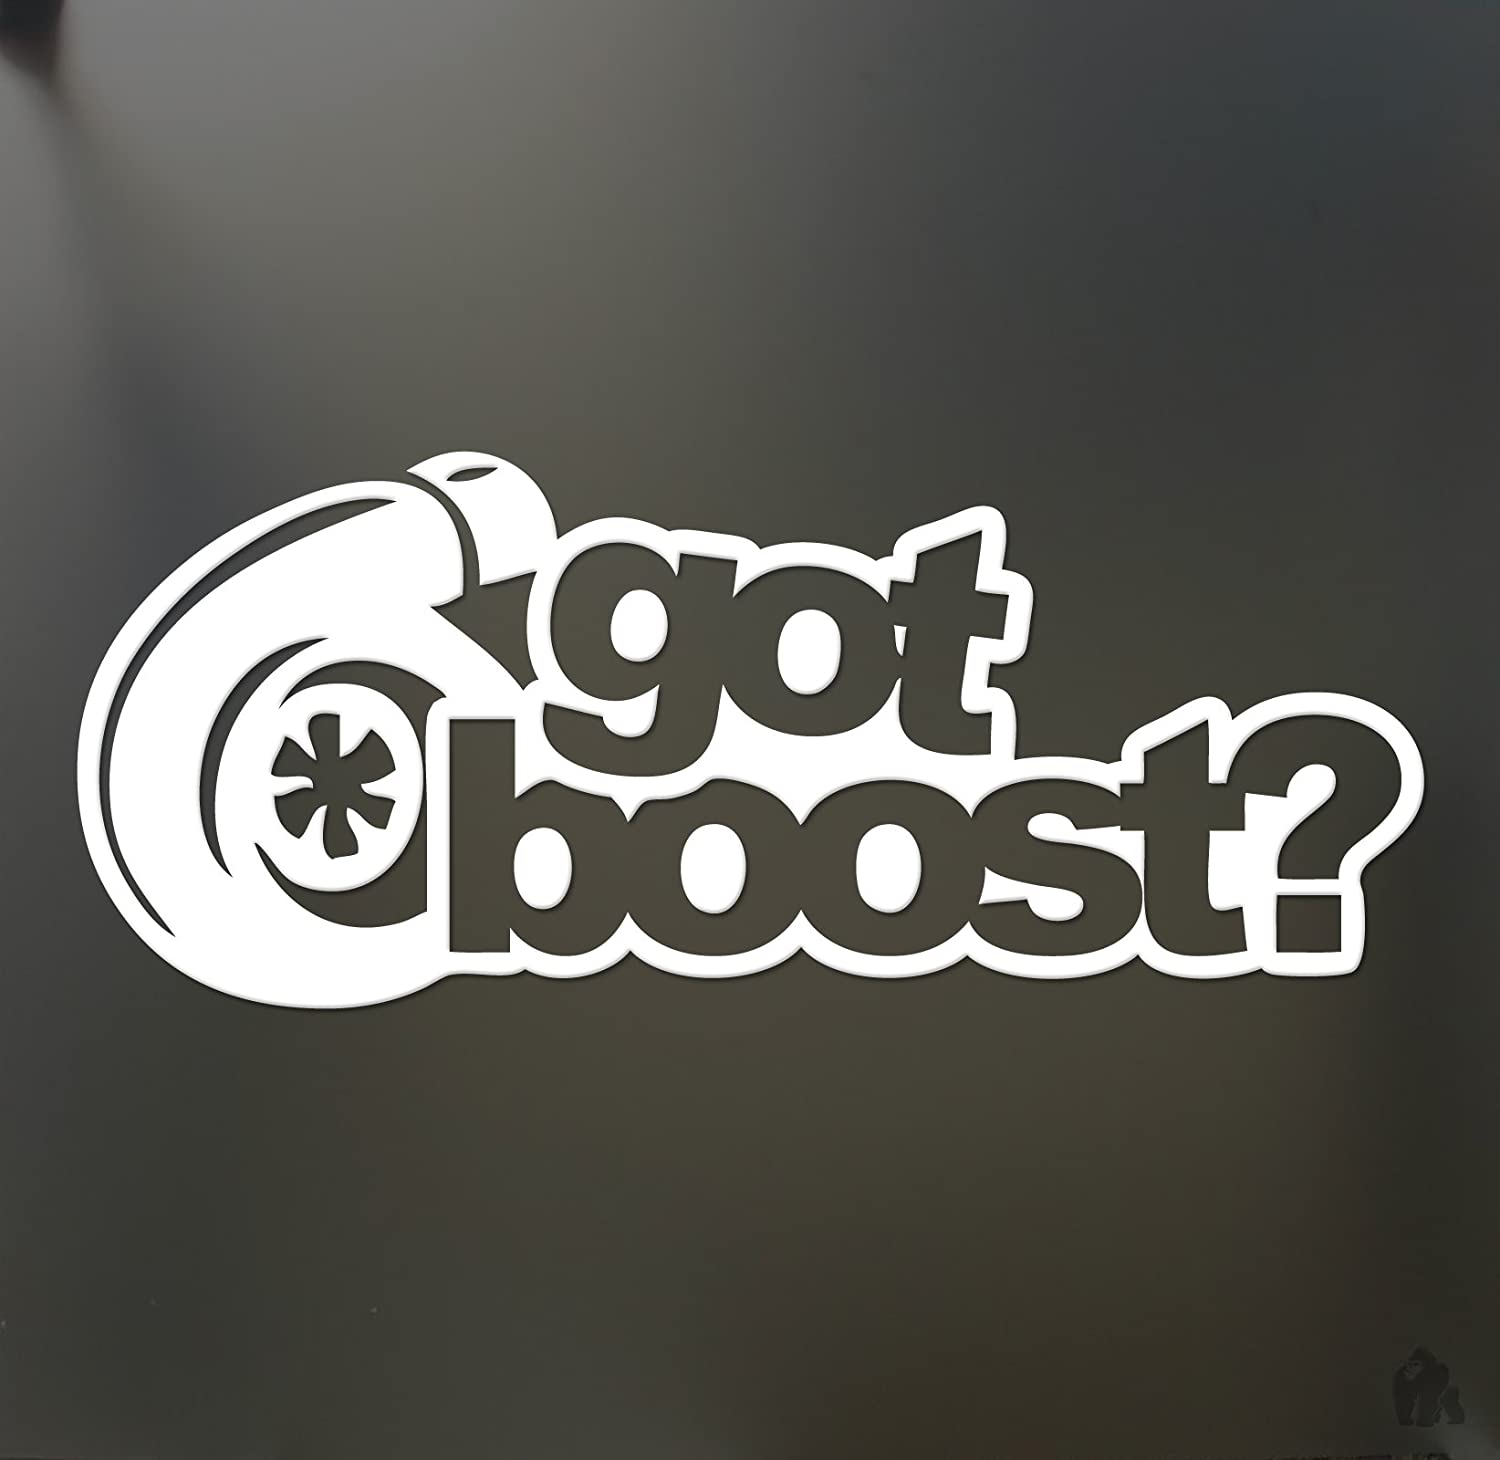 Amazon.com: got boost? sticker turbo JDM slammed Funny drift lowered car WRX window decal: Automotive